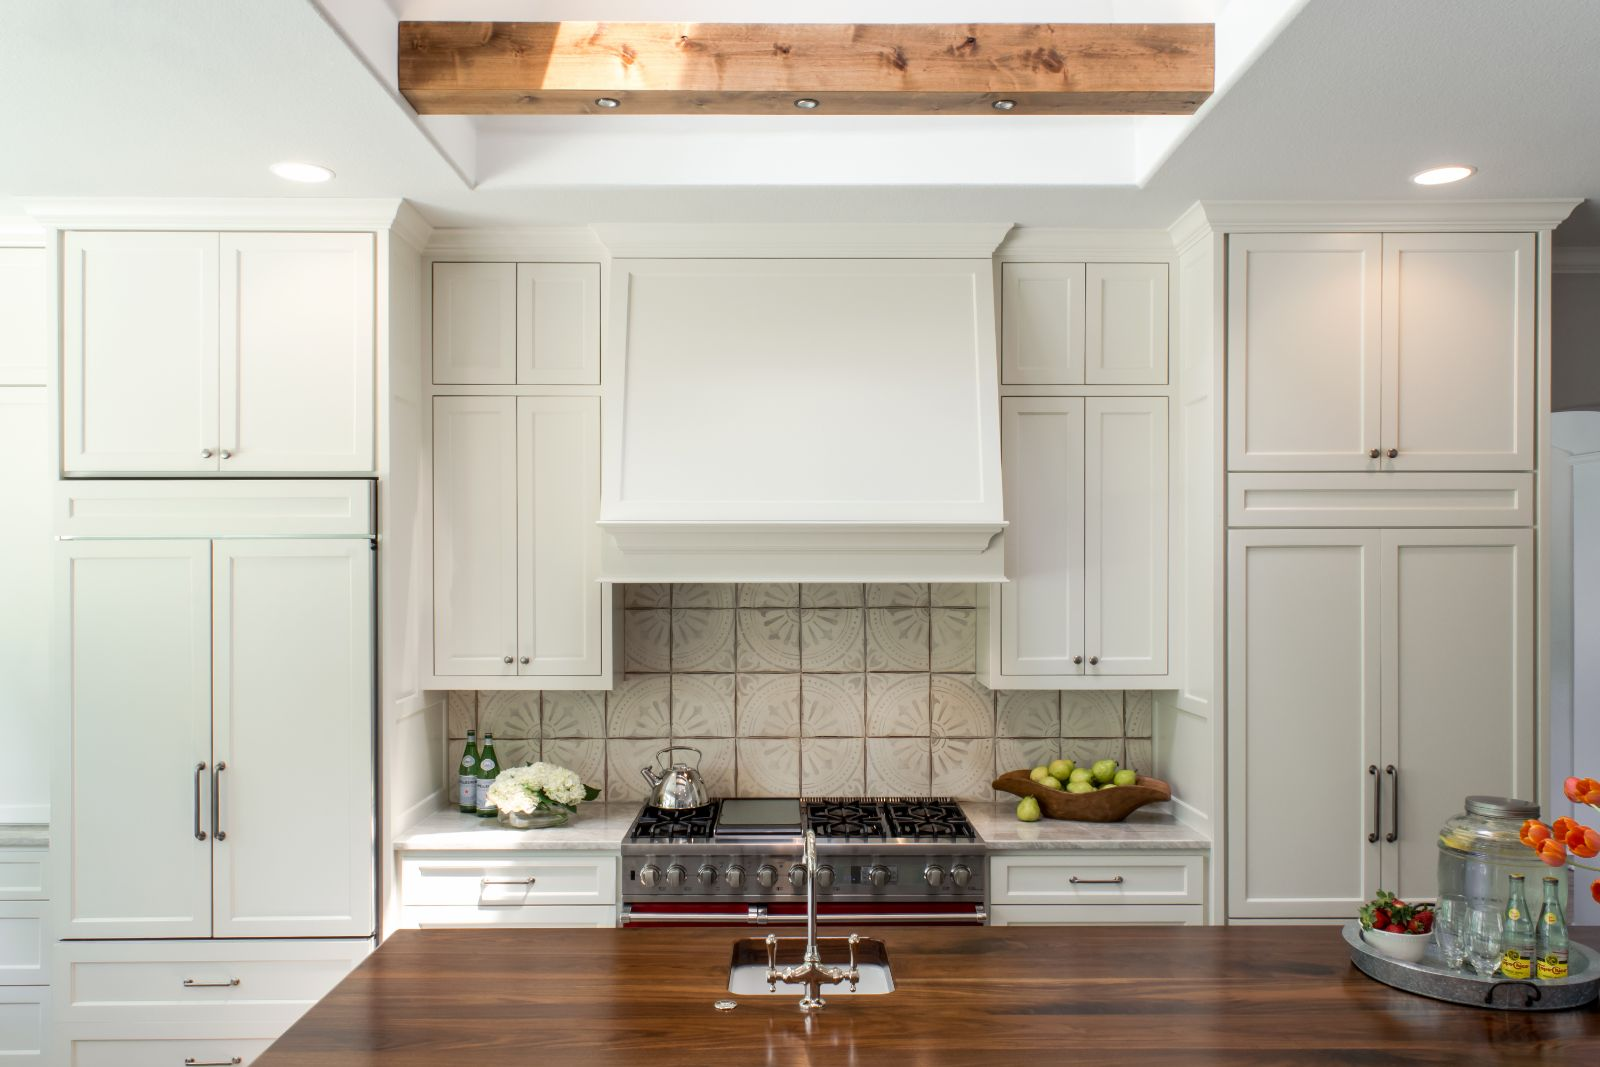 Hirko Kitchen Renovation with white cabinets from floor to ceiling, wooden kitchen island, and tile back splash